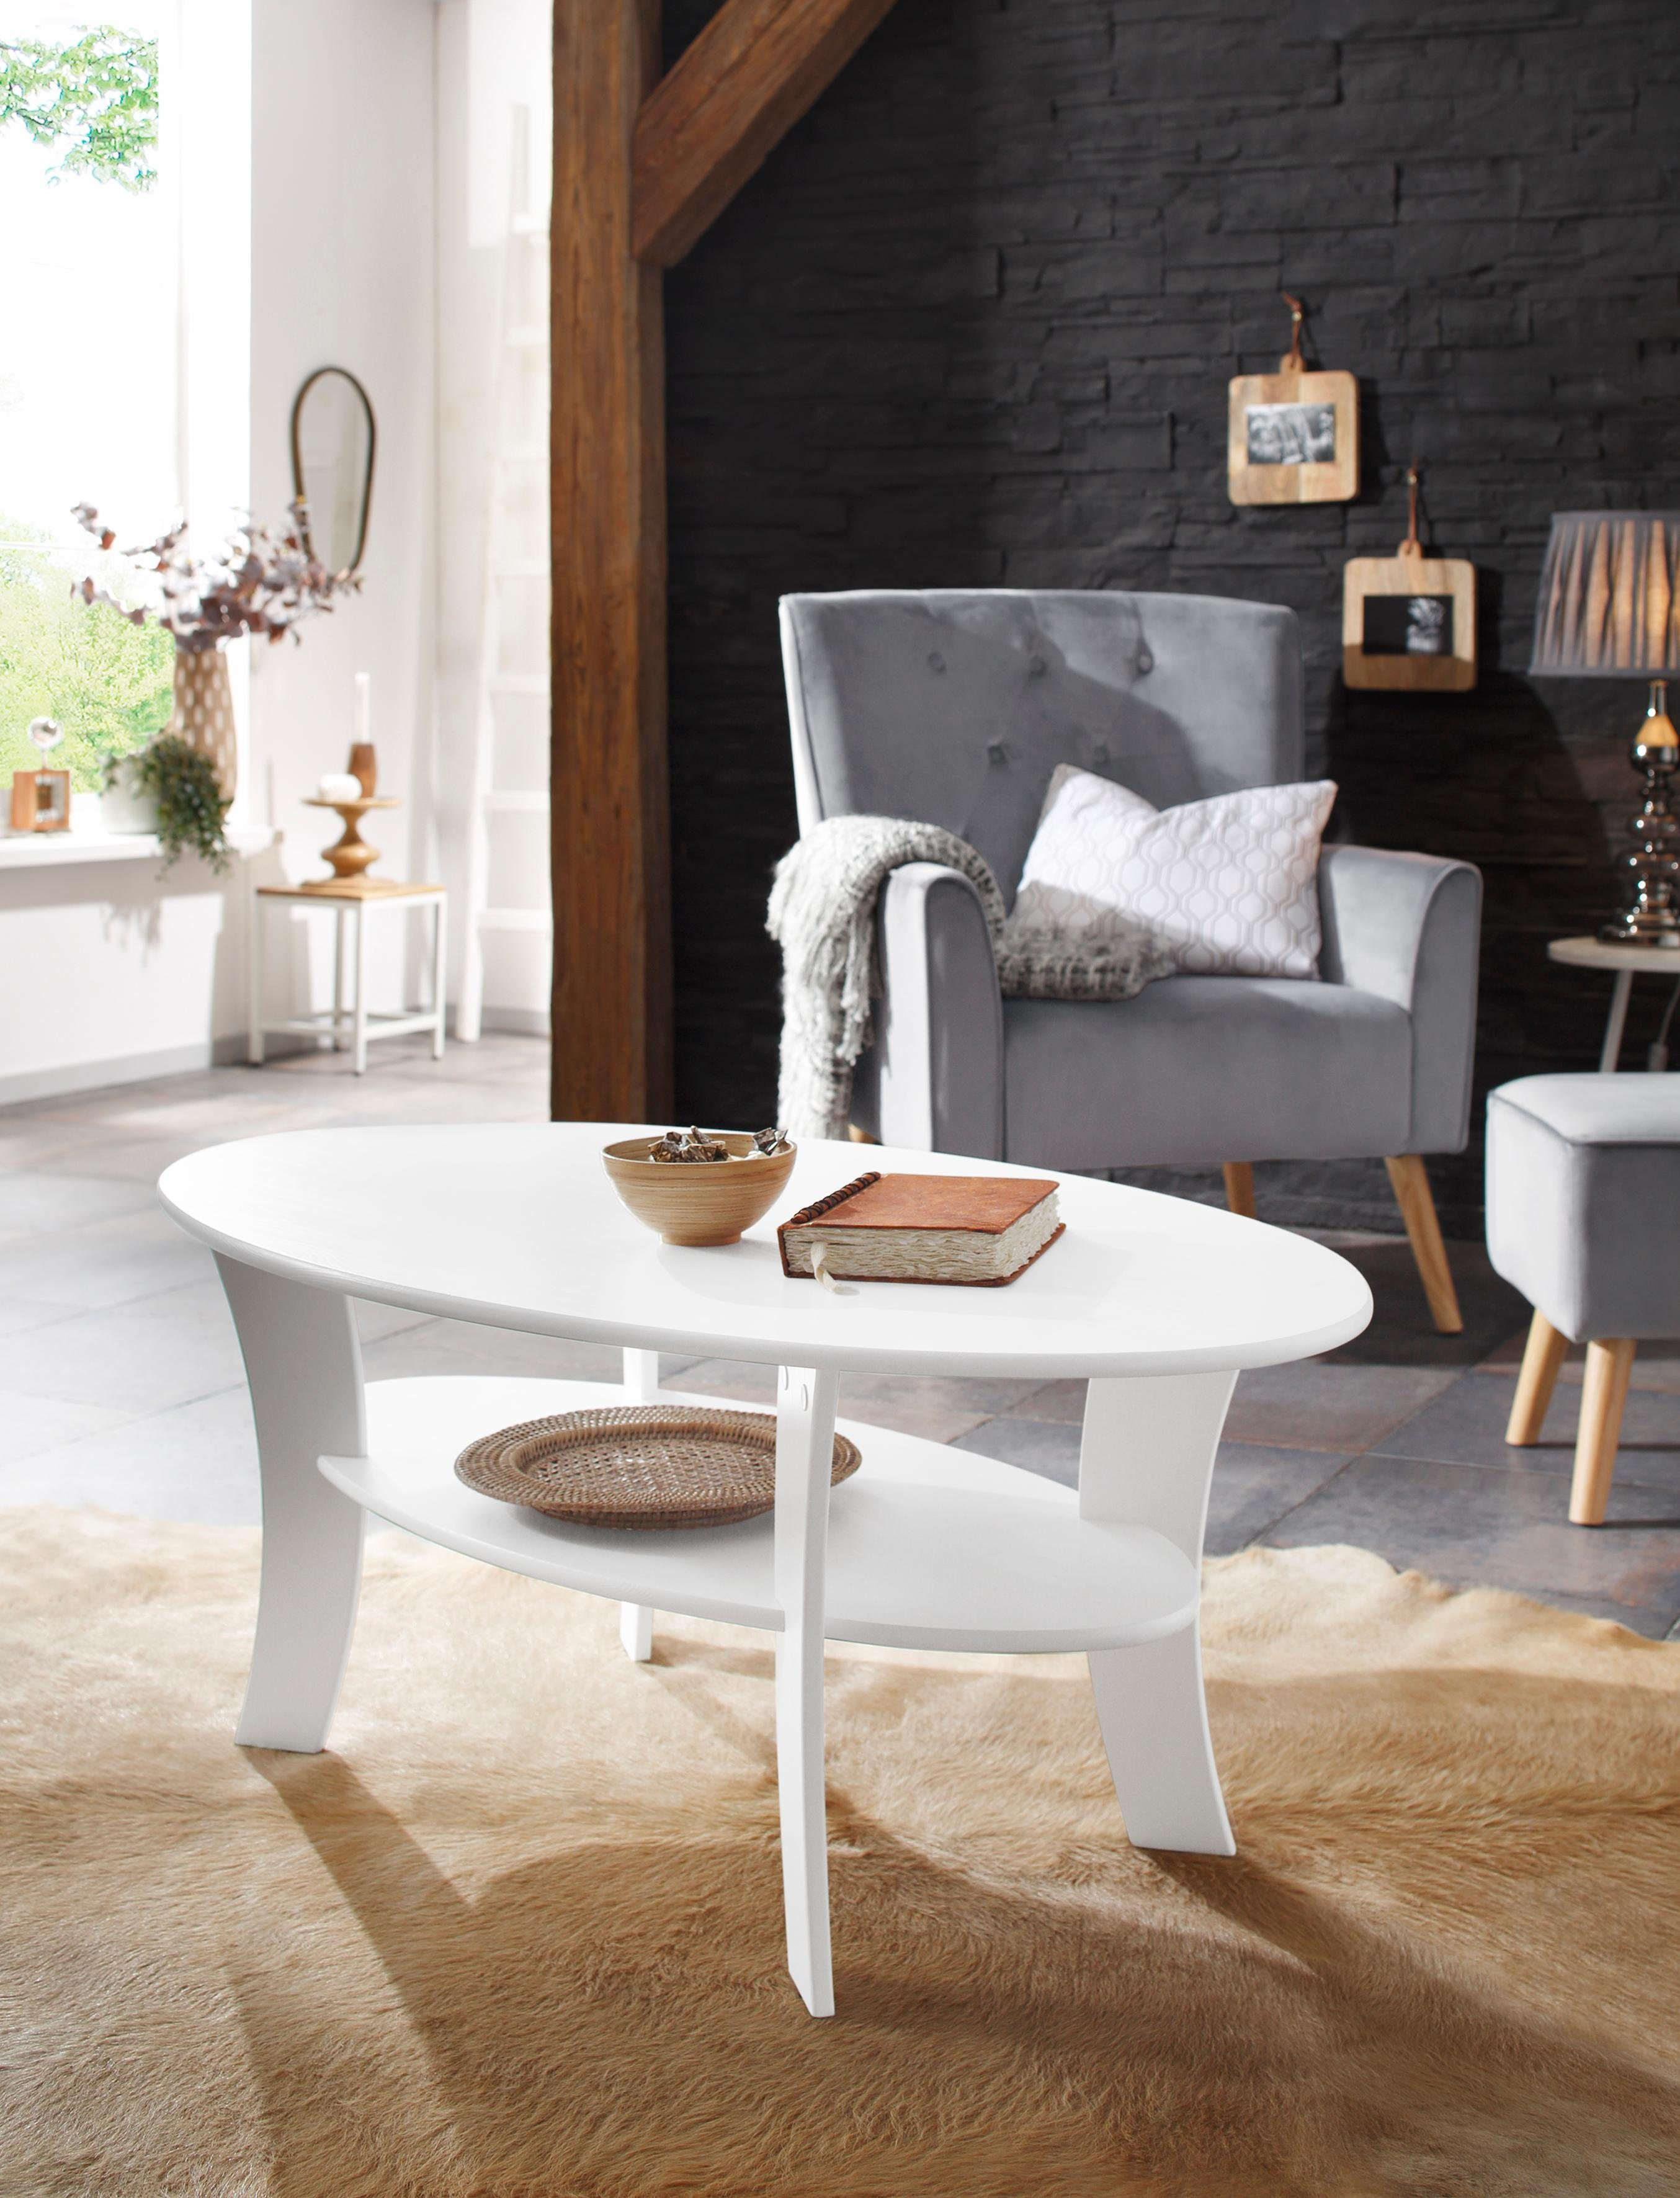 Home affaire Couchtisch »Lenne«, Oval mit Ablage | Wohnzimmer > Tische > Couchtische | Glanz | Holz | Home affaire